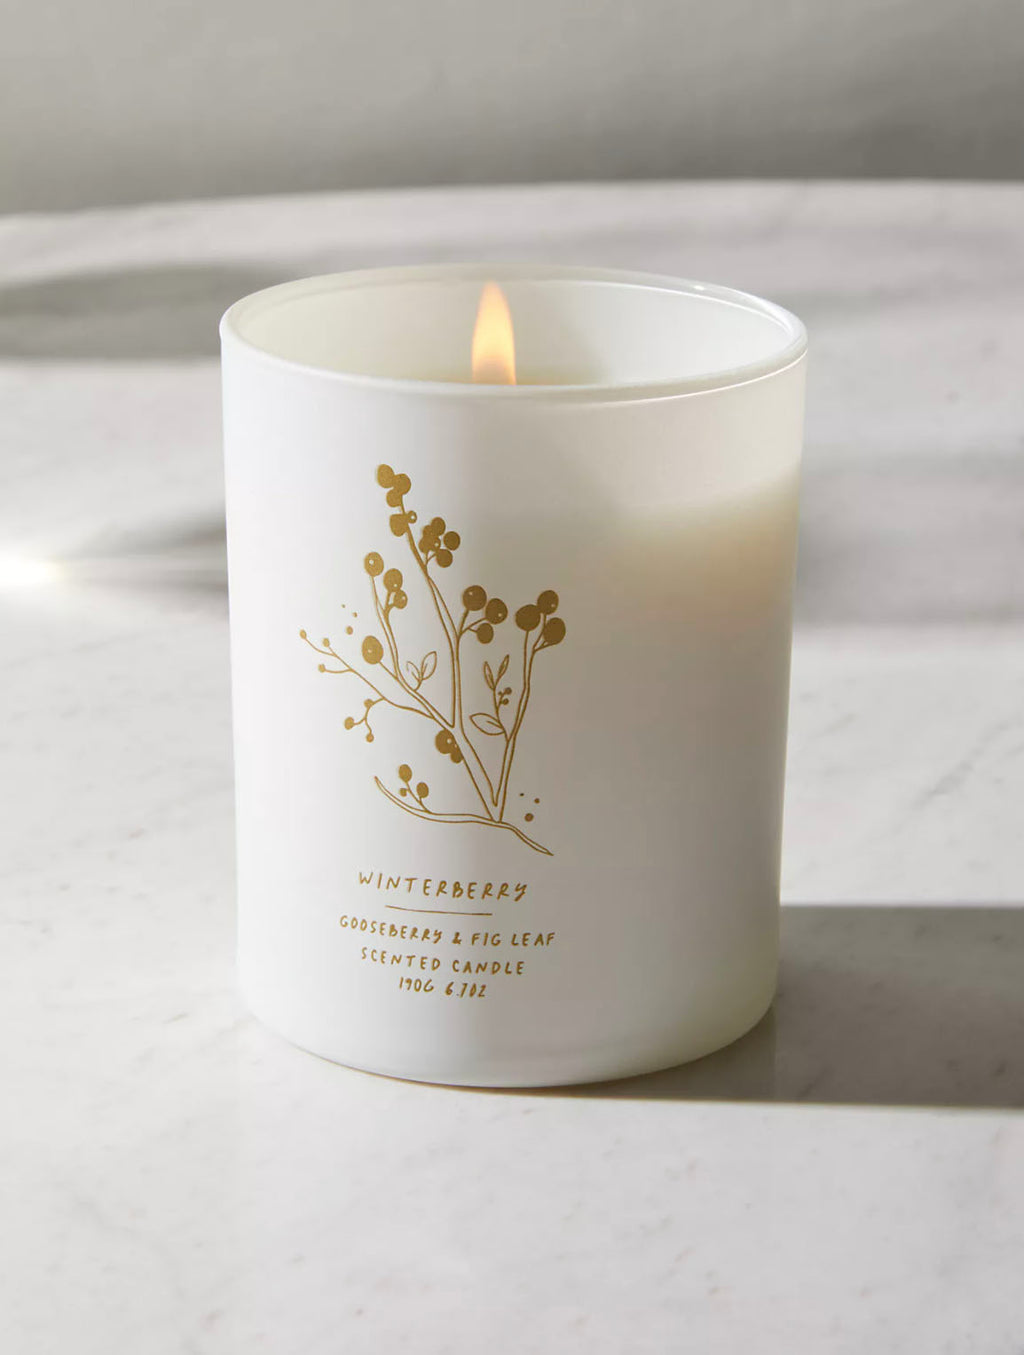 Free People Candle in Winterberry